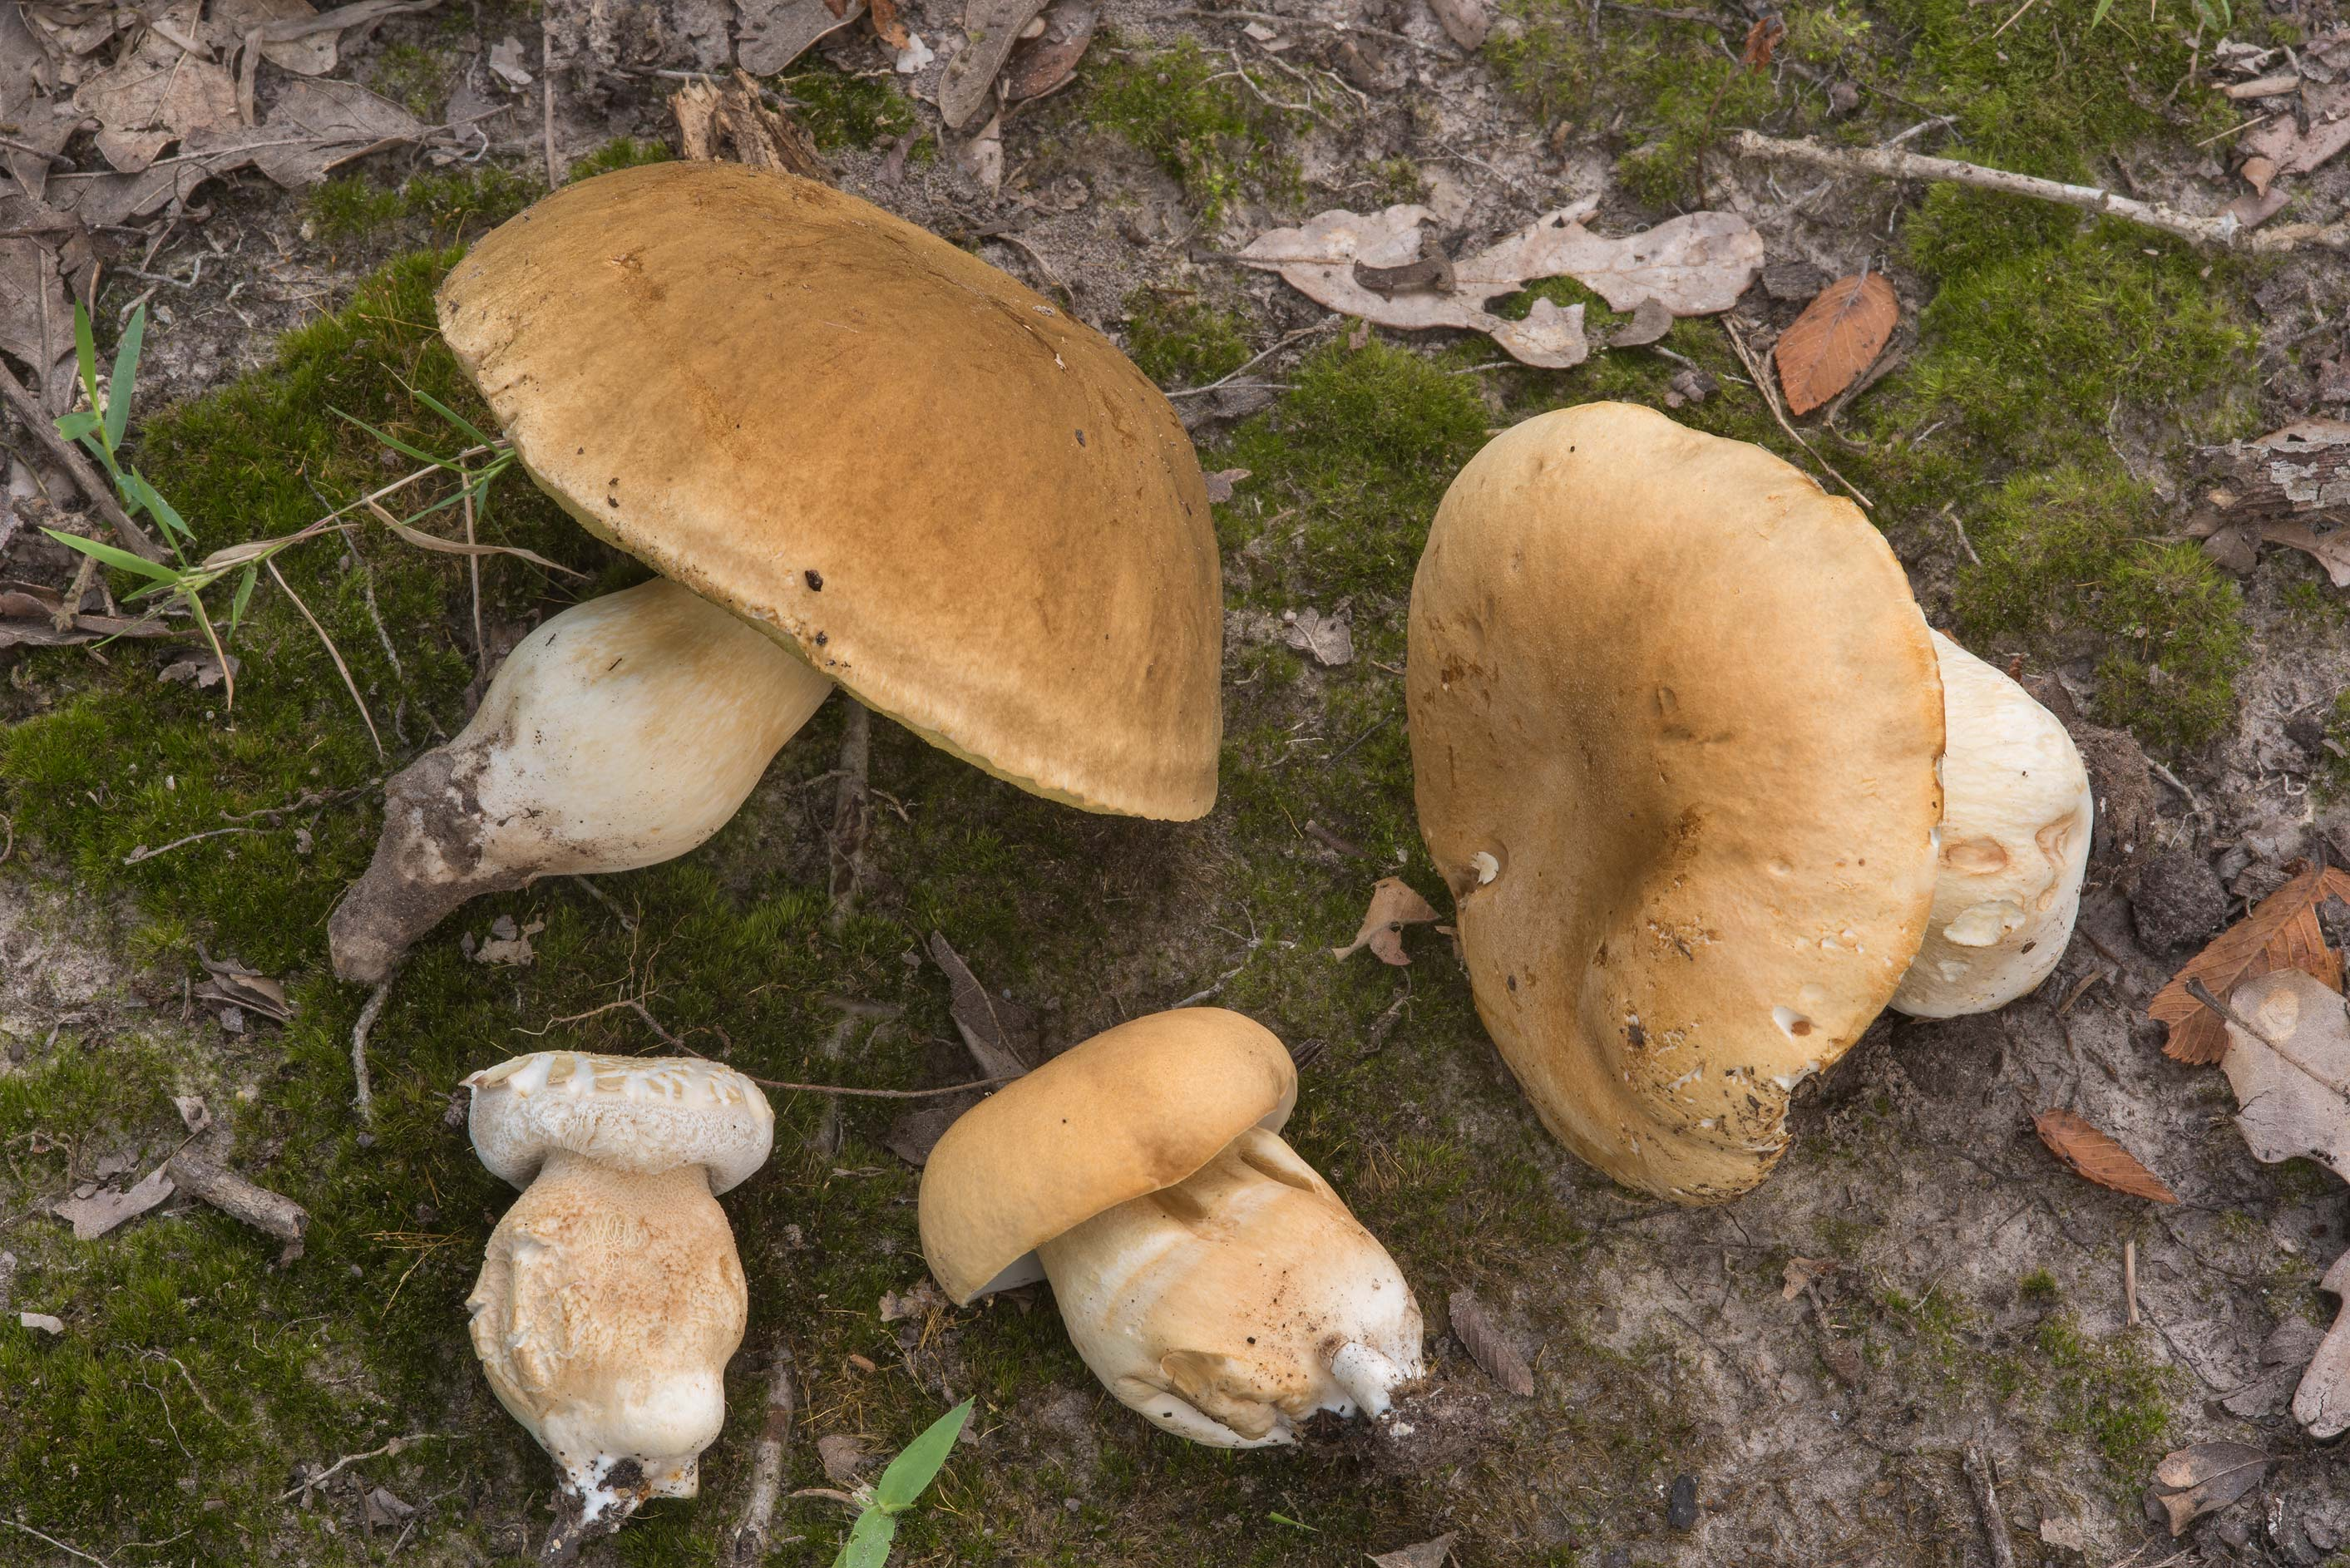 Porcini mushrooms (Boletus edulis group) under...Creek Park. College Station, Texas